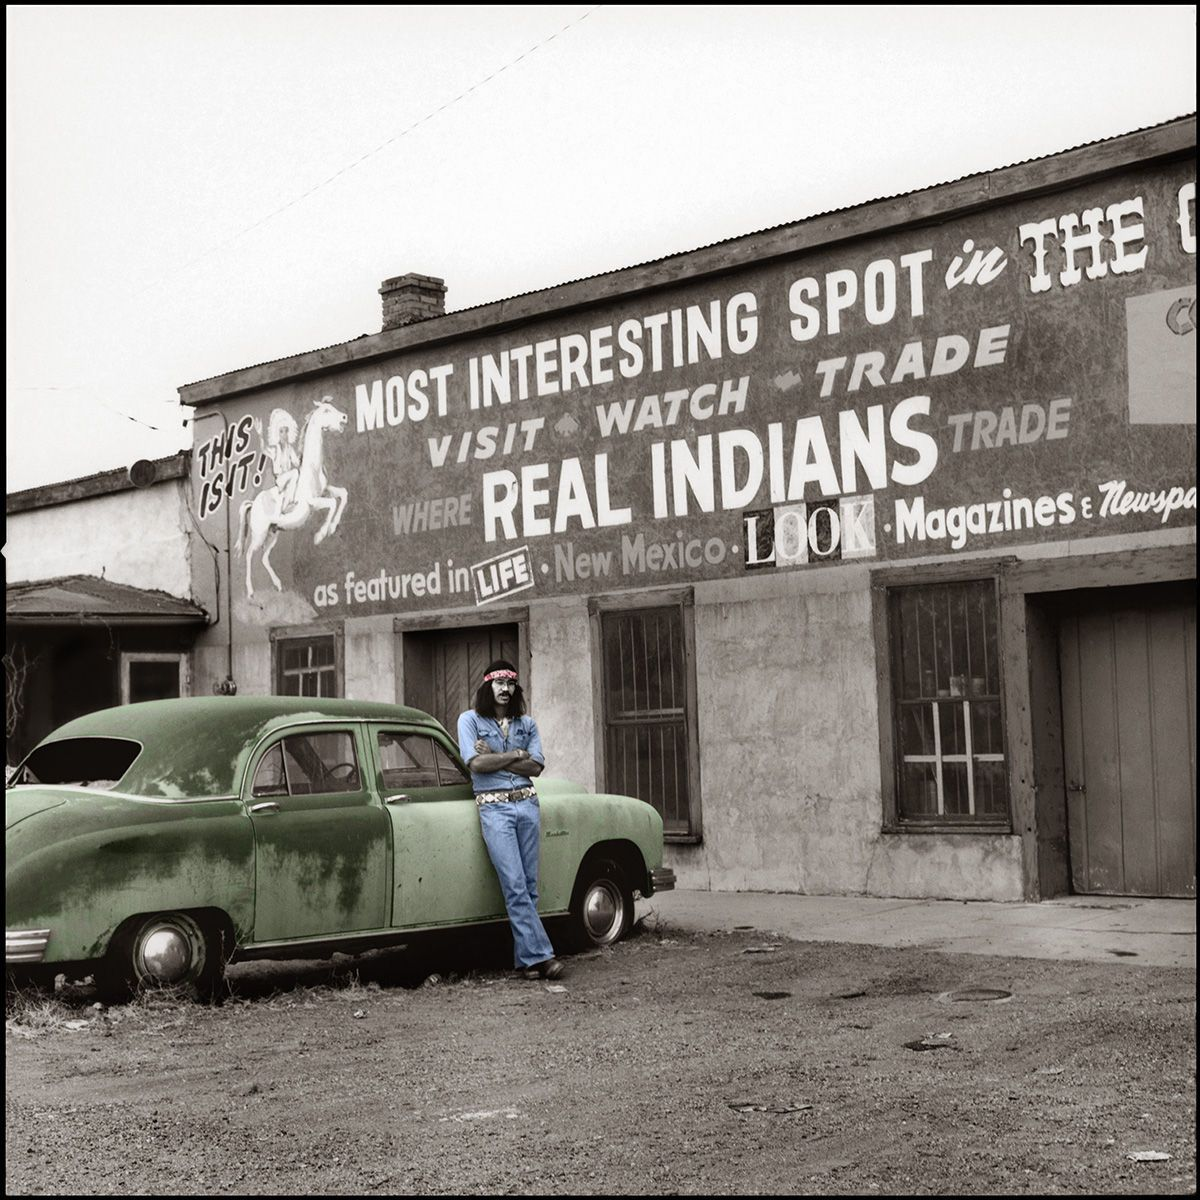 REAL INDIANS, photograph 1977